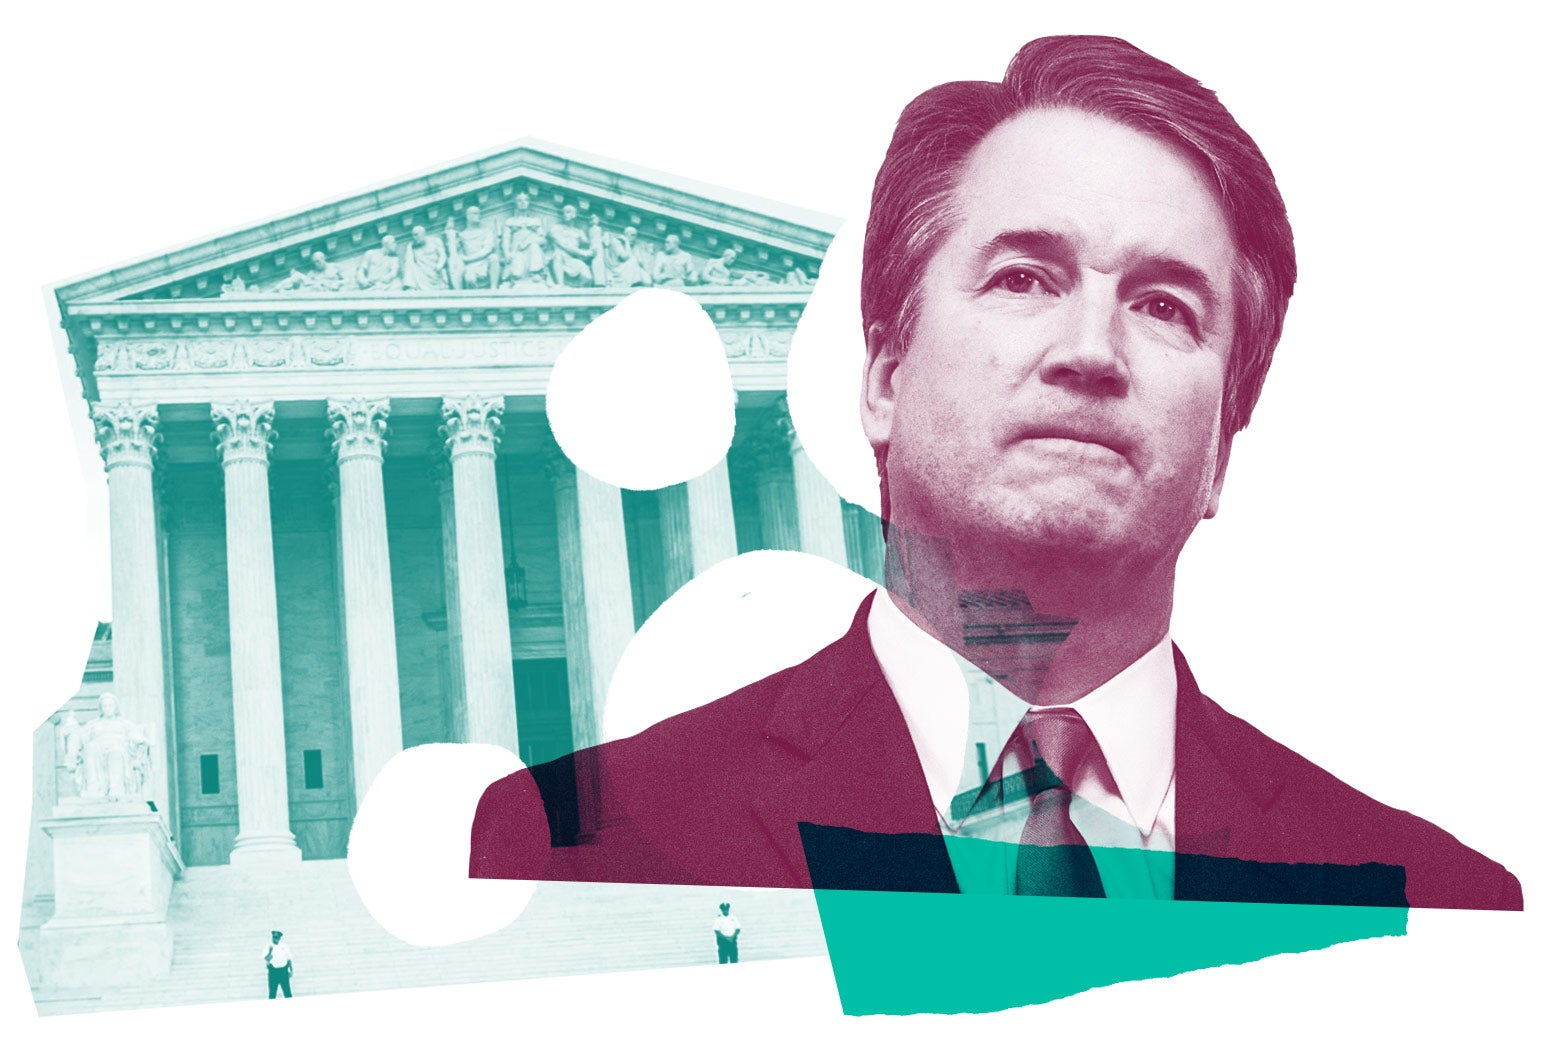 Collage of Supreme Court and Brett Kavanaugh.